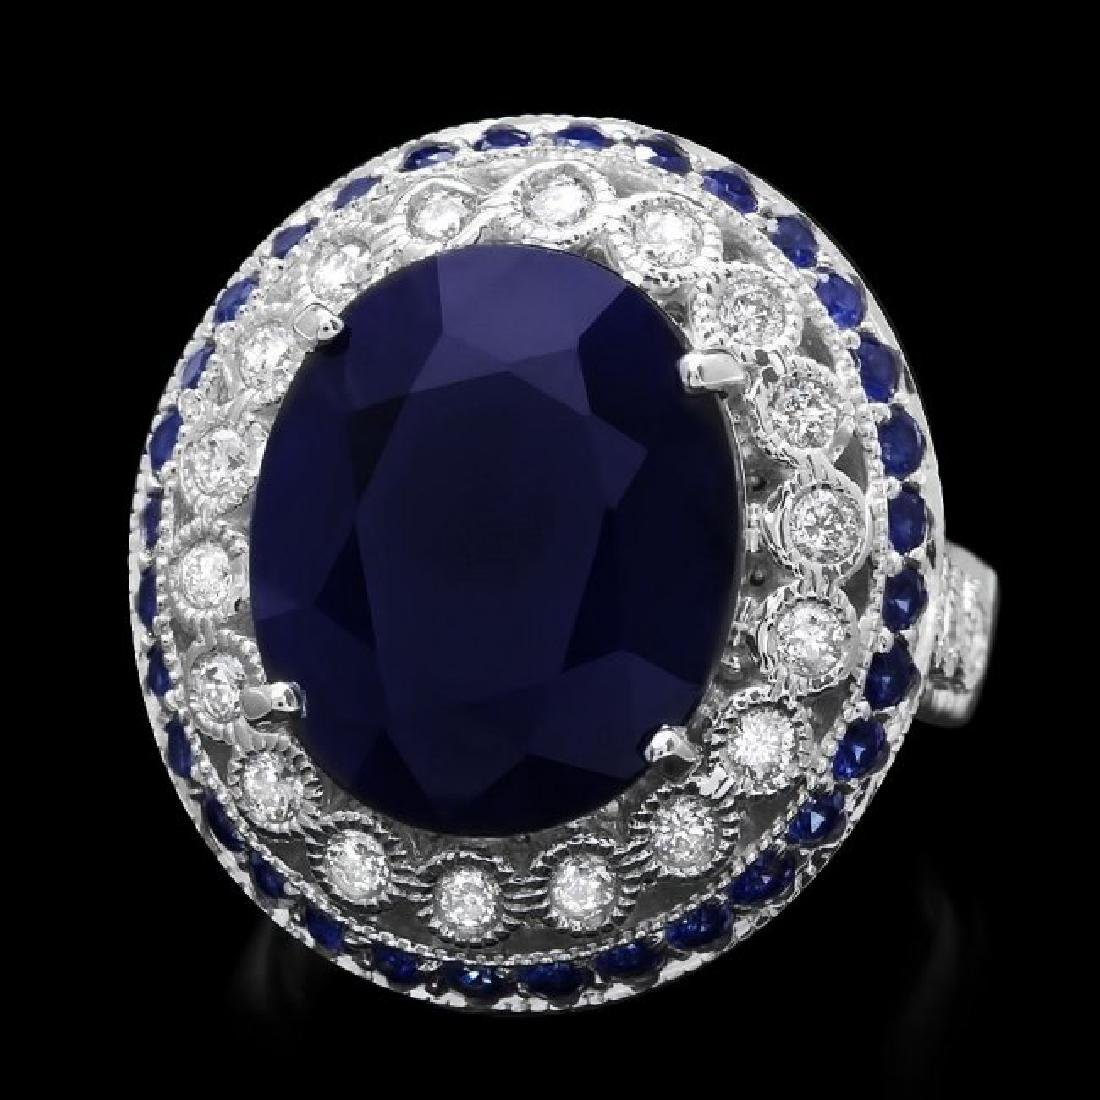 14k Gold 11.2ct Sapphire 0.60ct Diamond Ring - 2